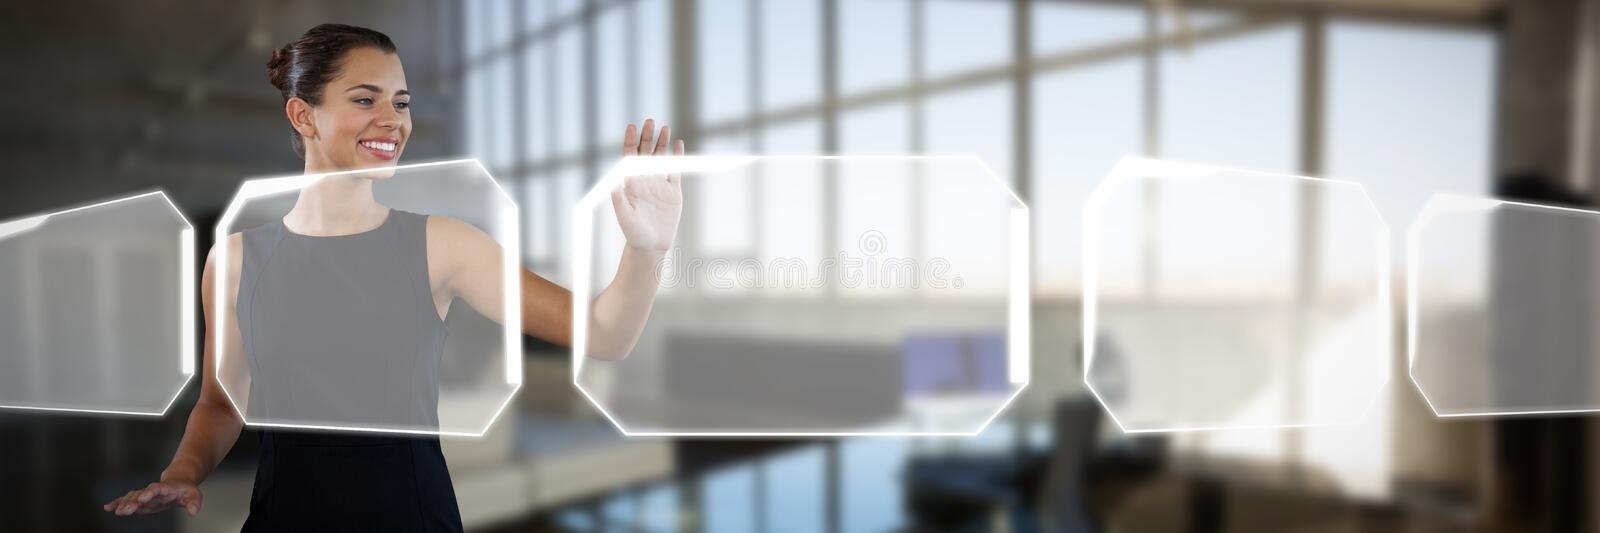 Smiling young businesswoman using invisible interface against interior of empty creative office royalty free stock photos